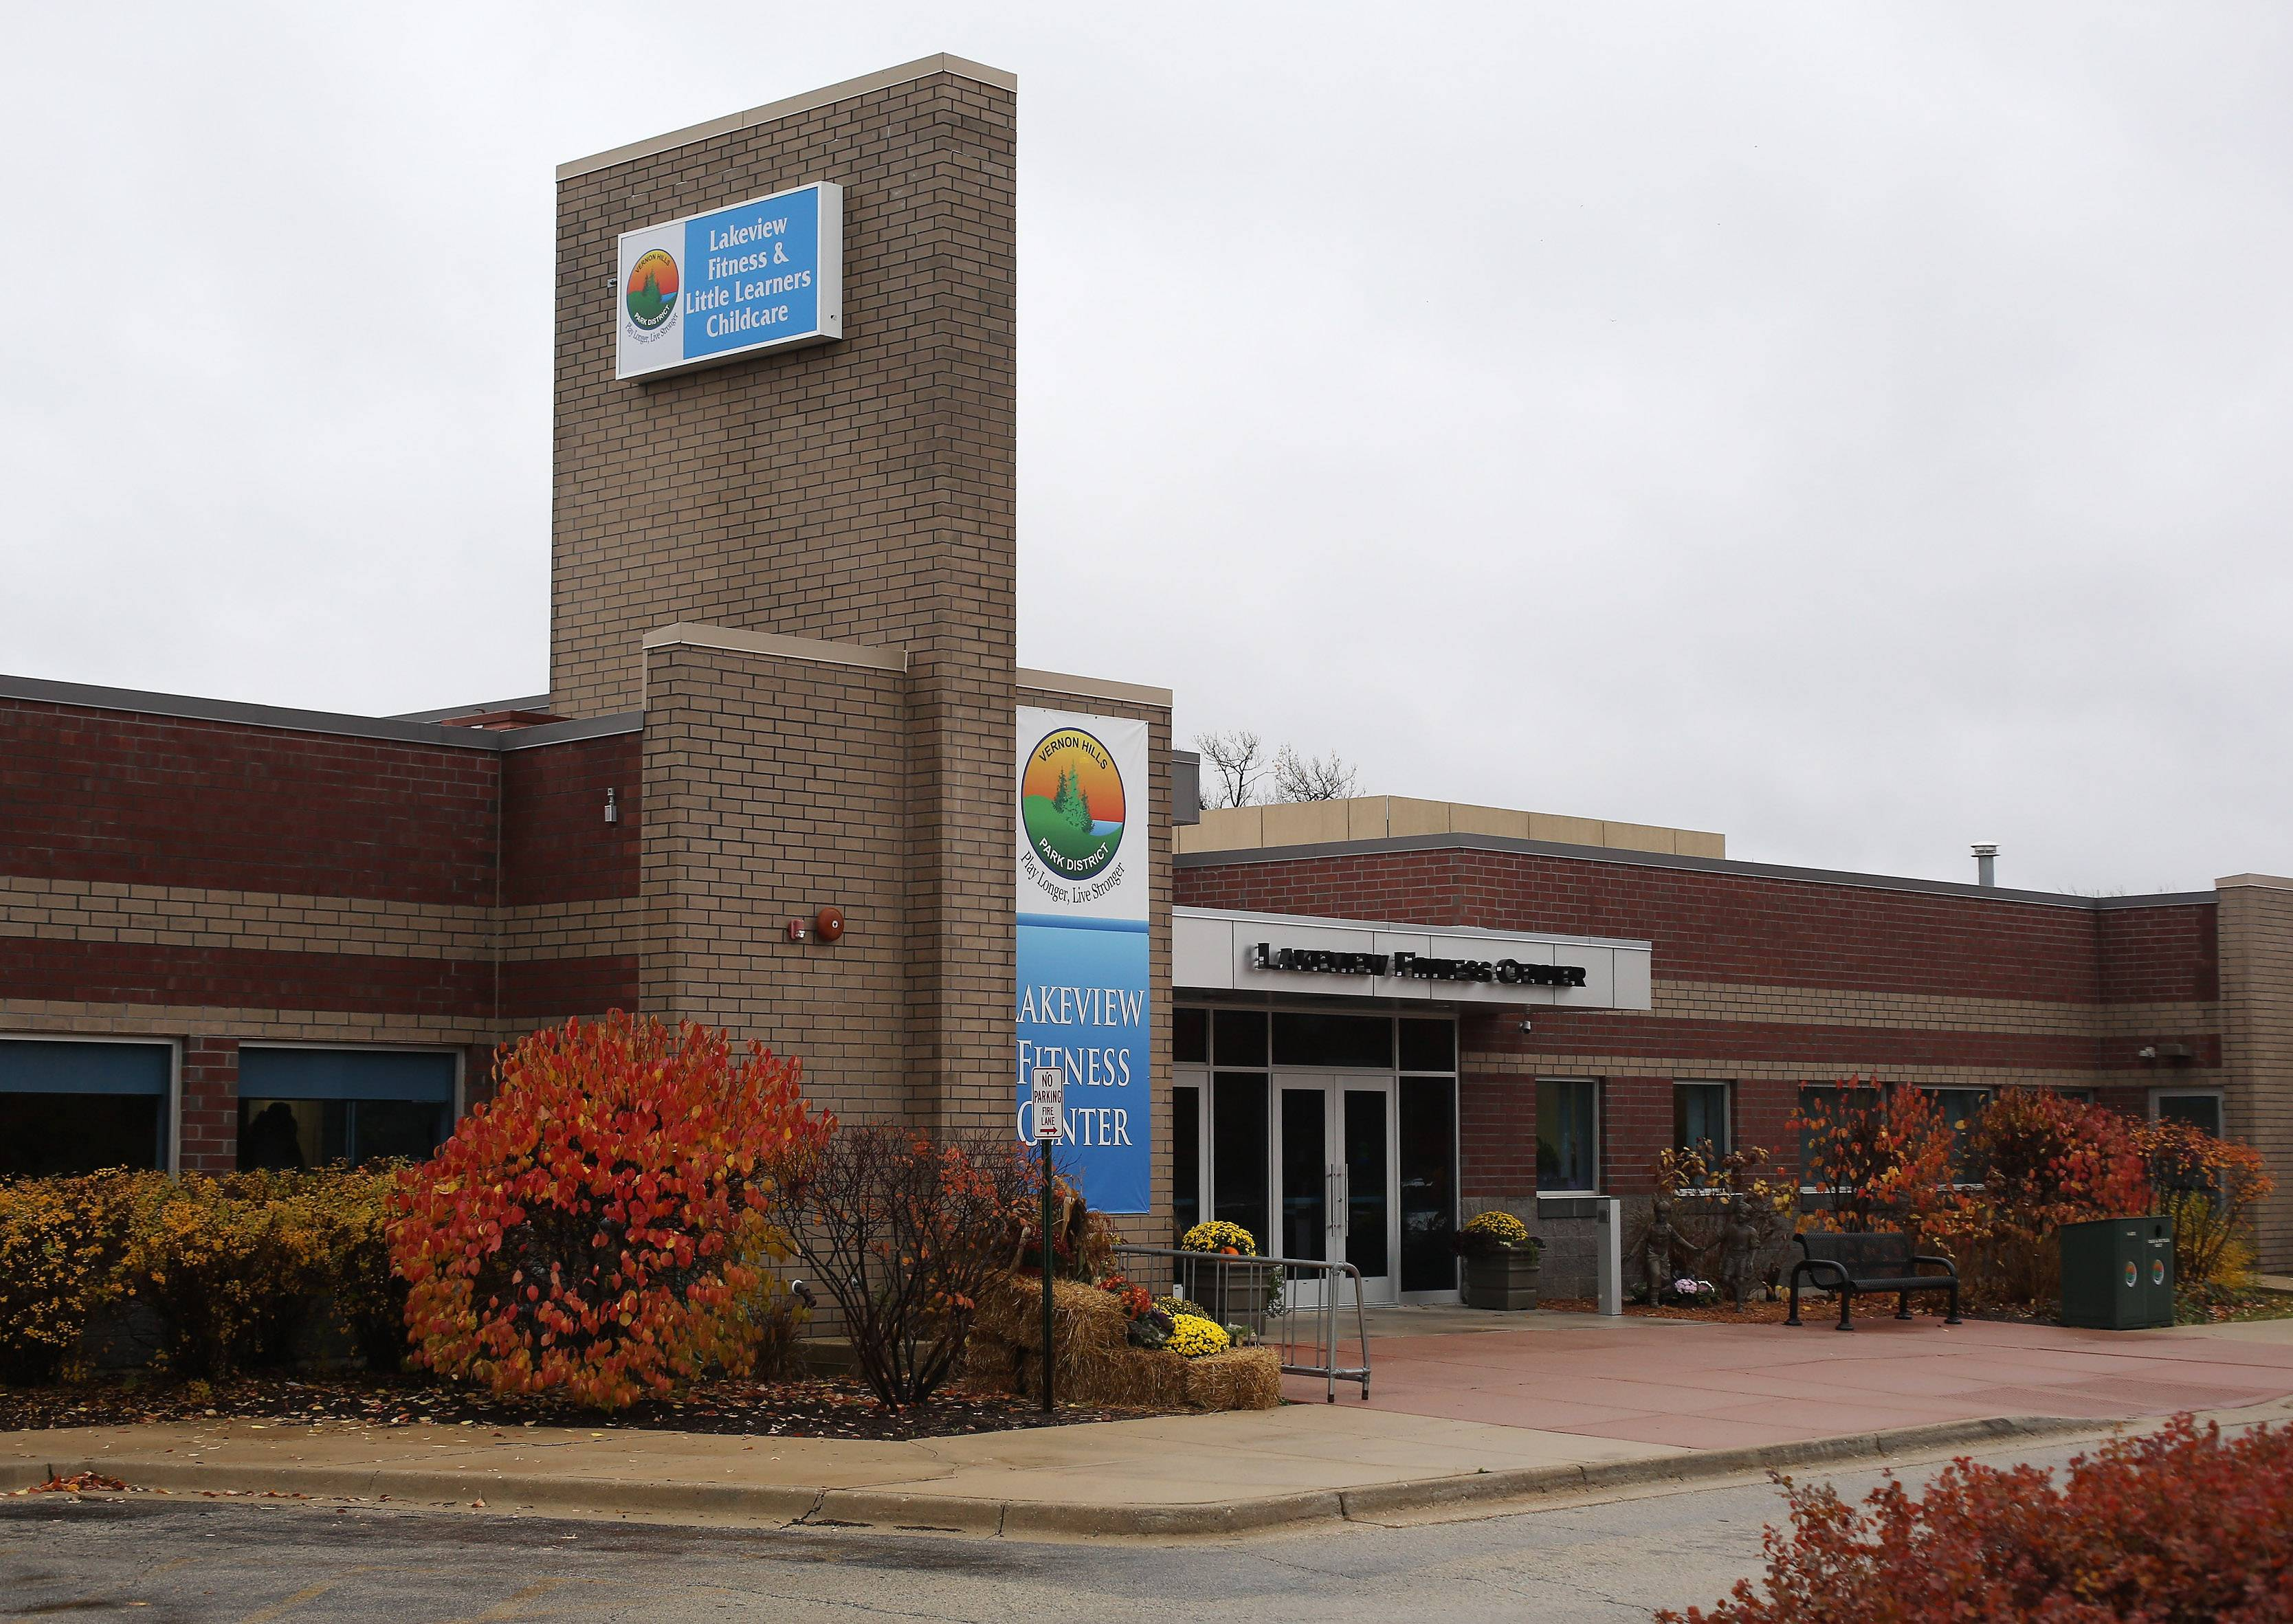 The Vernon Hills Park District has made an early payment on the $2 million village loan used to purchase a former YMCA building that is now the Lakeview Fitness Center in Vernon Hills.